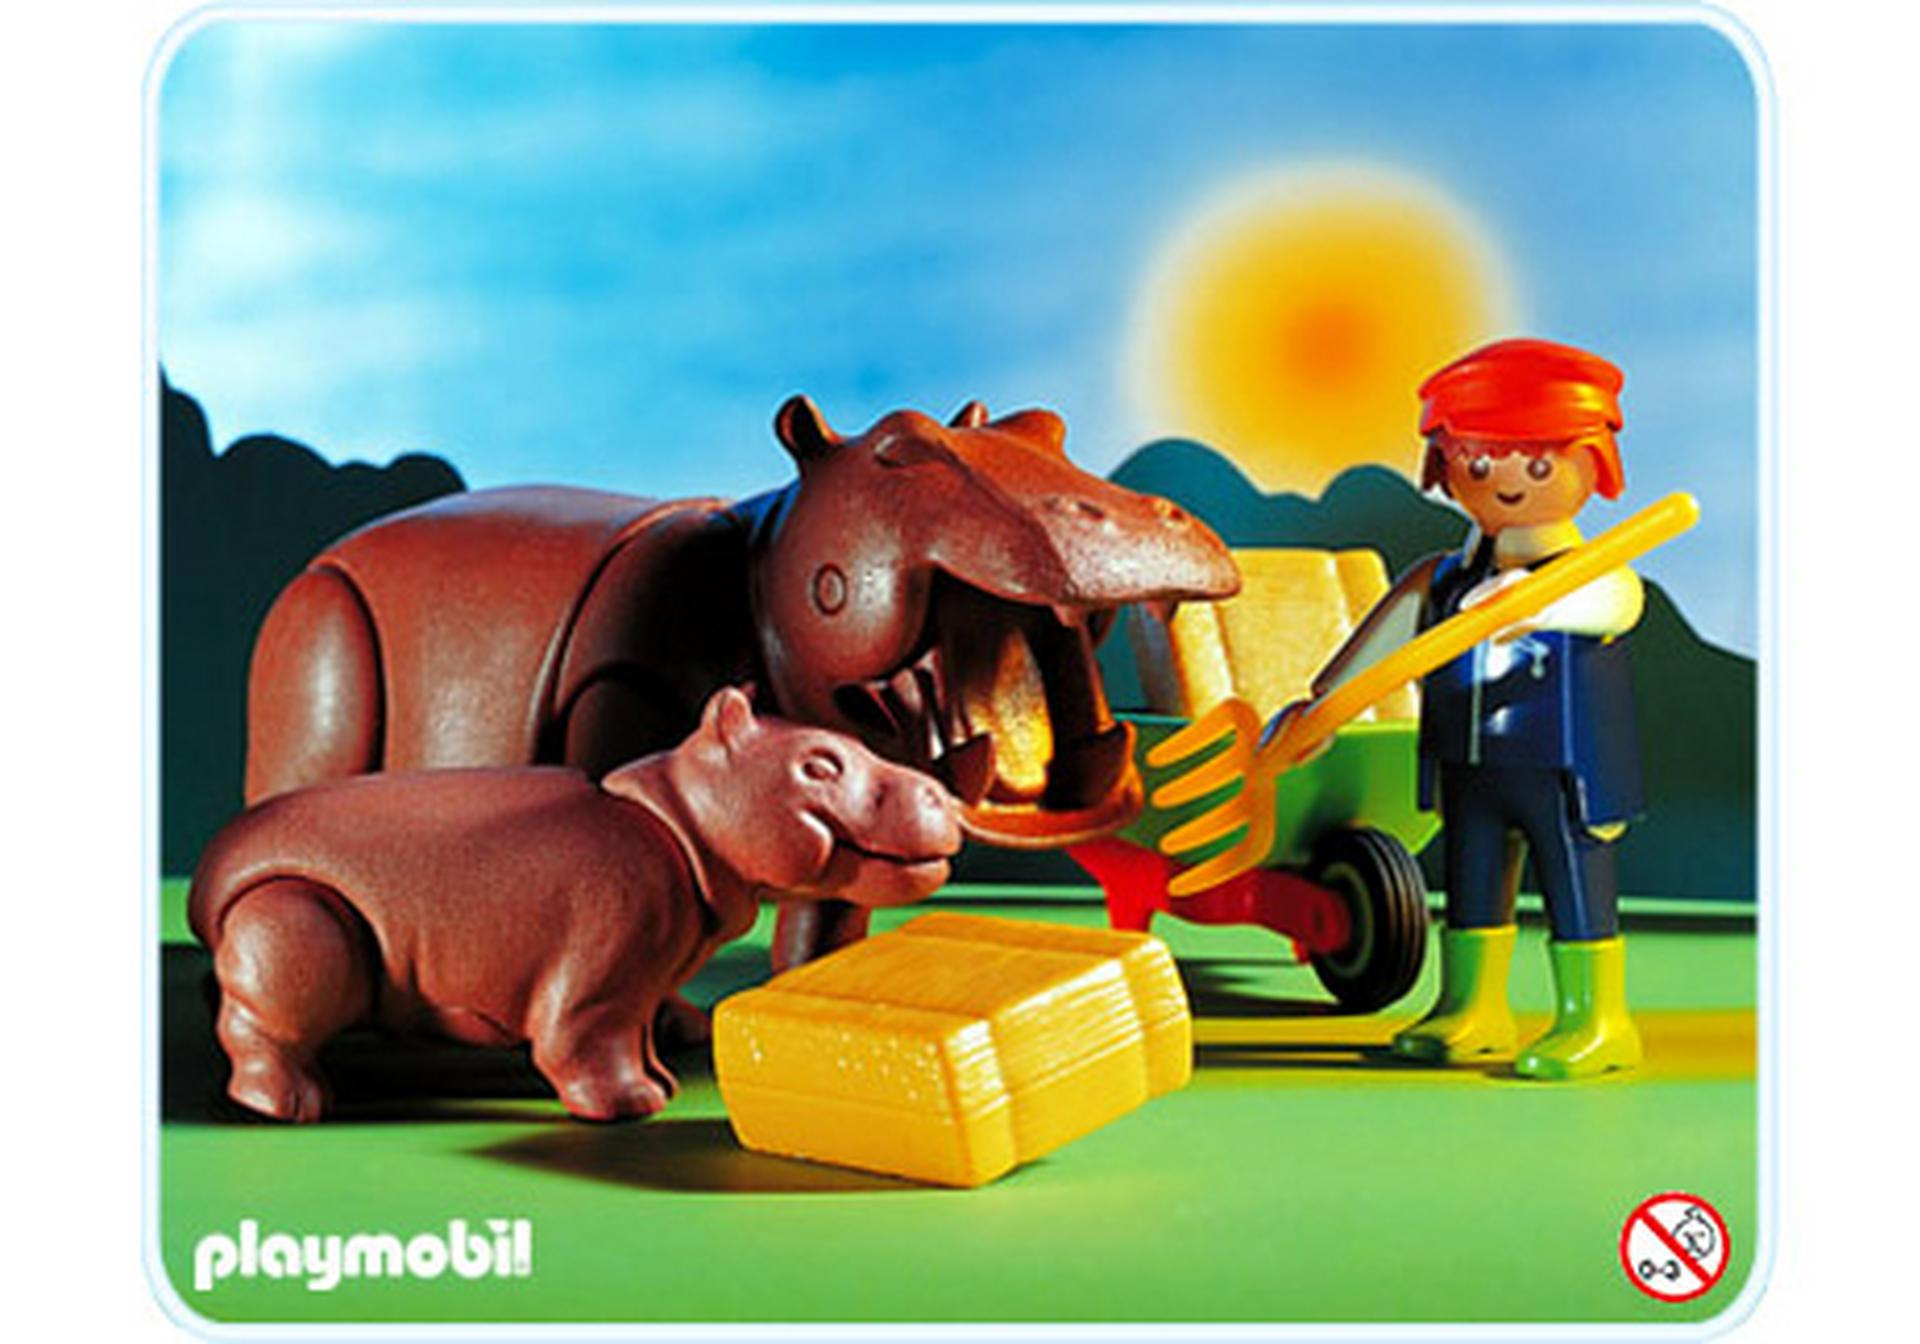 Hippopotames gardien 3639 a playmobil france for Playmobil buanderie